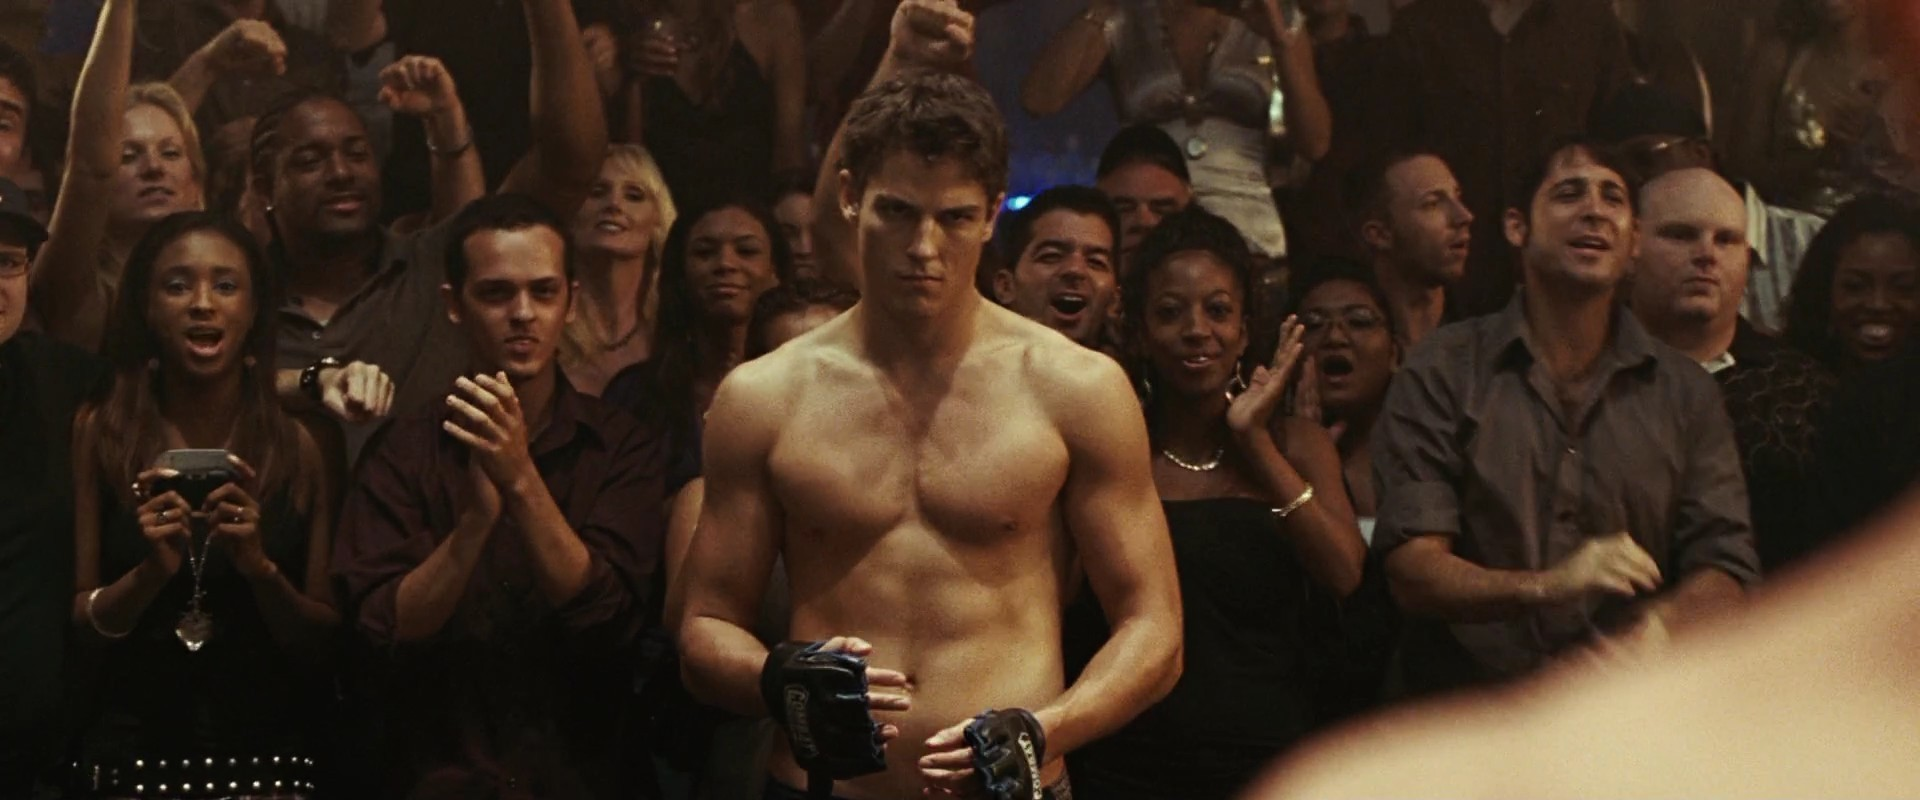 Never Back Down - Sean Faris Image (20060658) - Fanpop